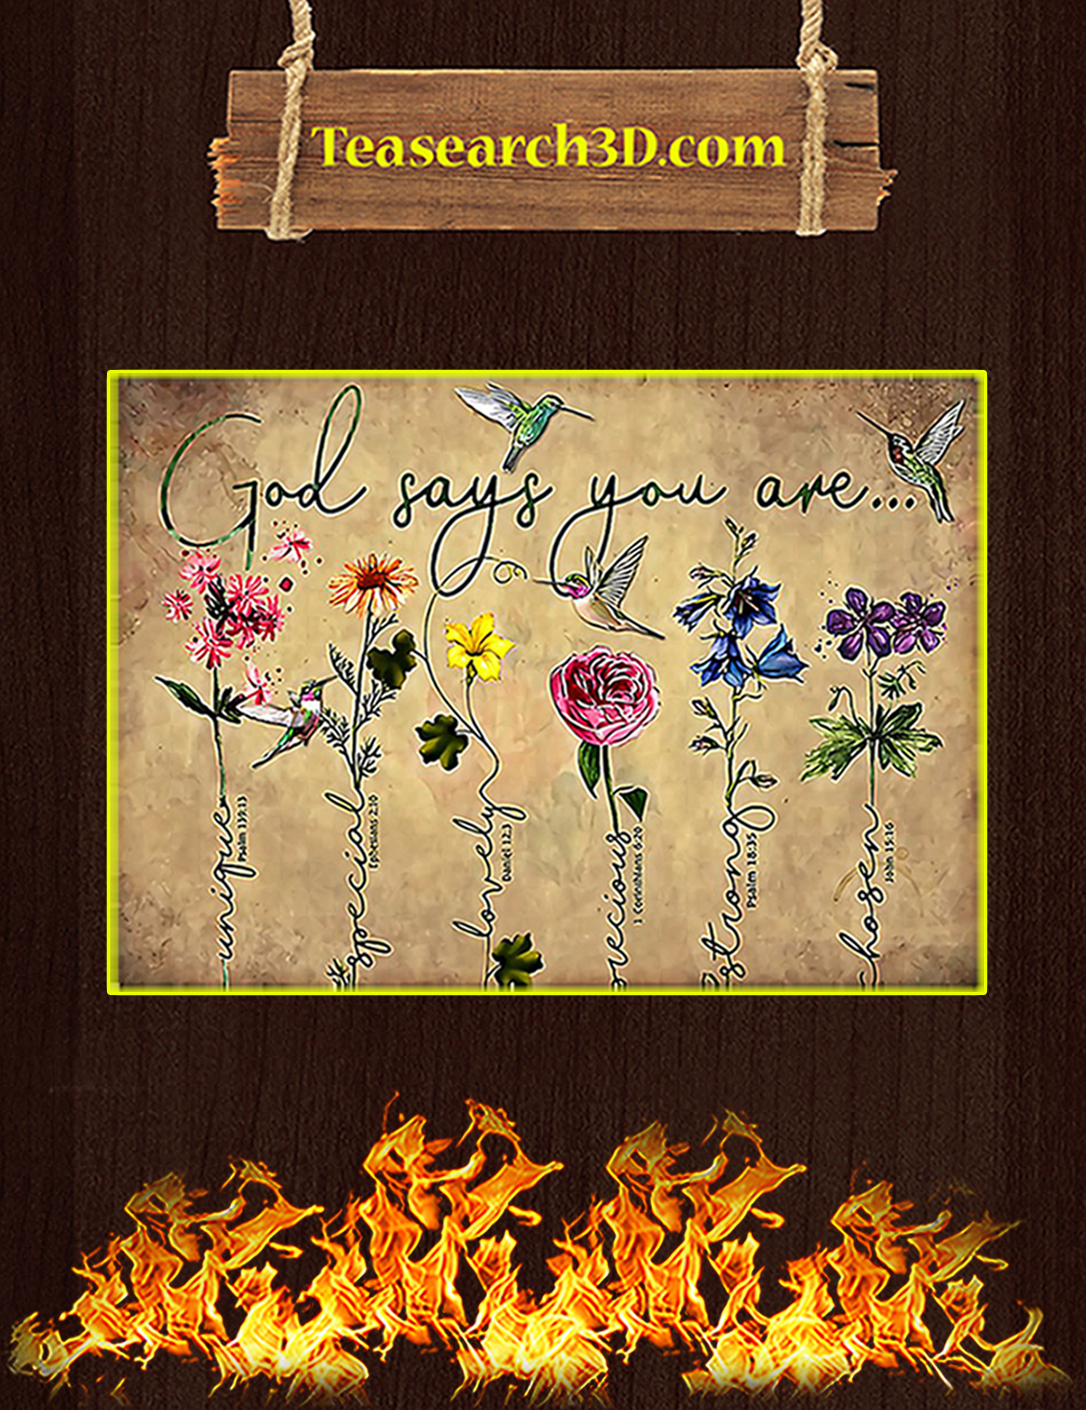 Hummingbird flower God says you are poster A2